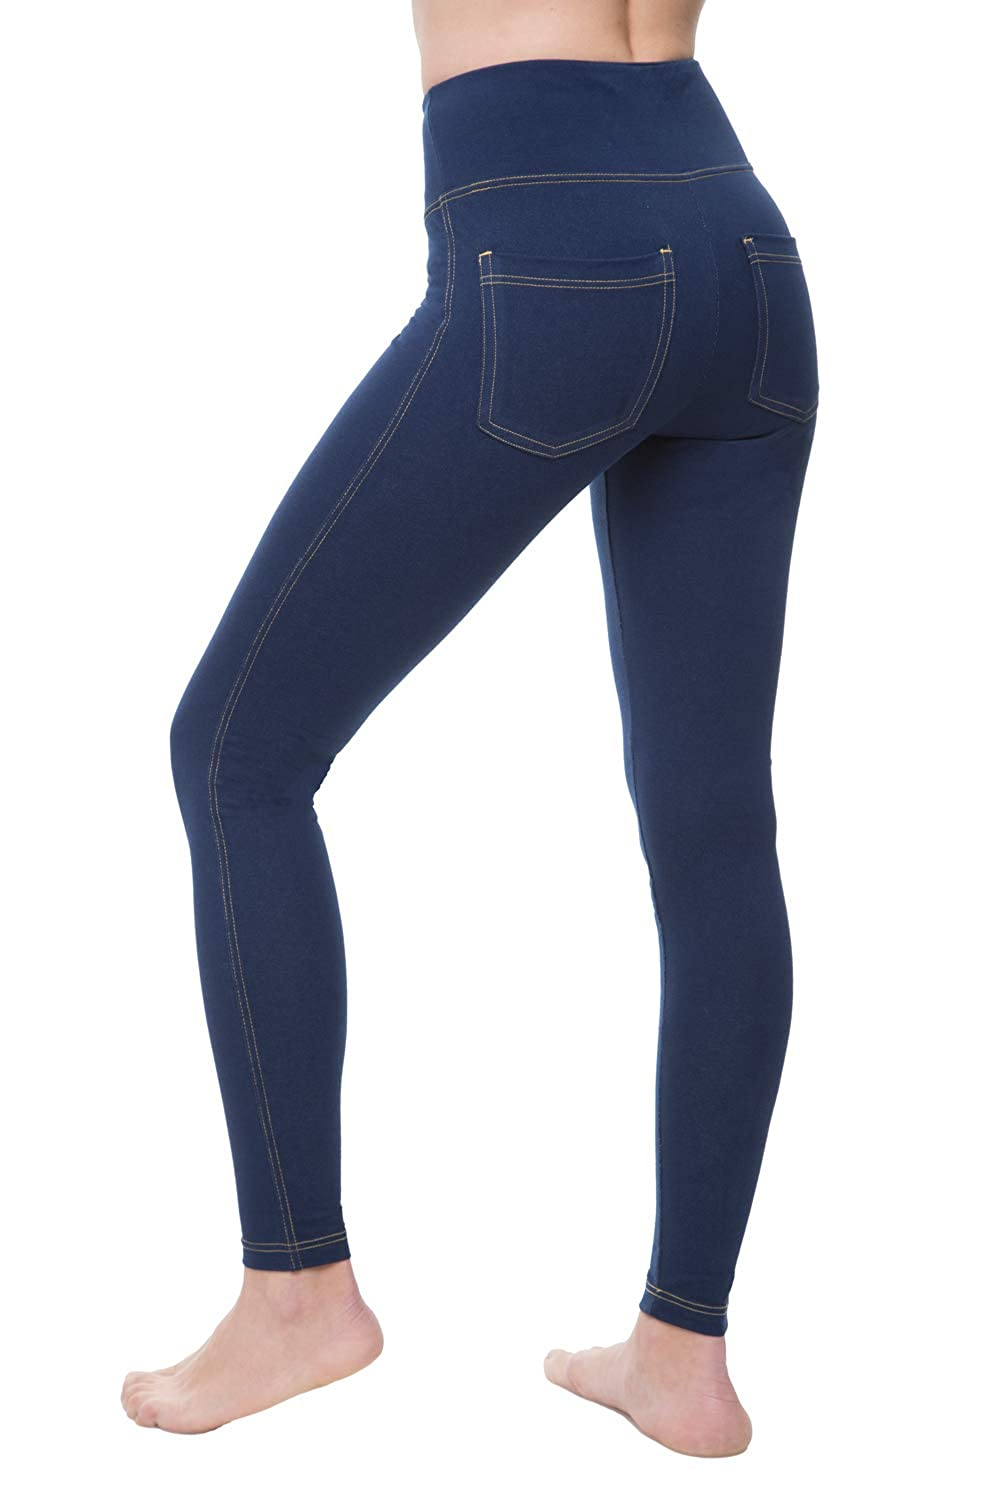 latest releases best service pretty cheap NIRLON Jeggings for Women High Waist Tummy Control Jean Leggings with  Pockets Plus Size